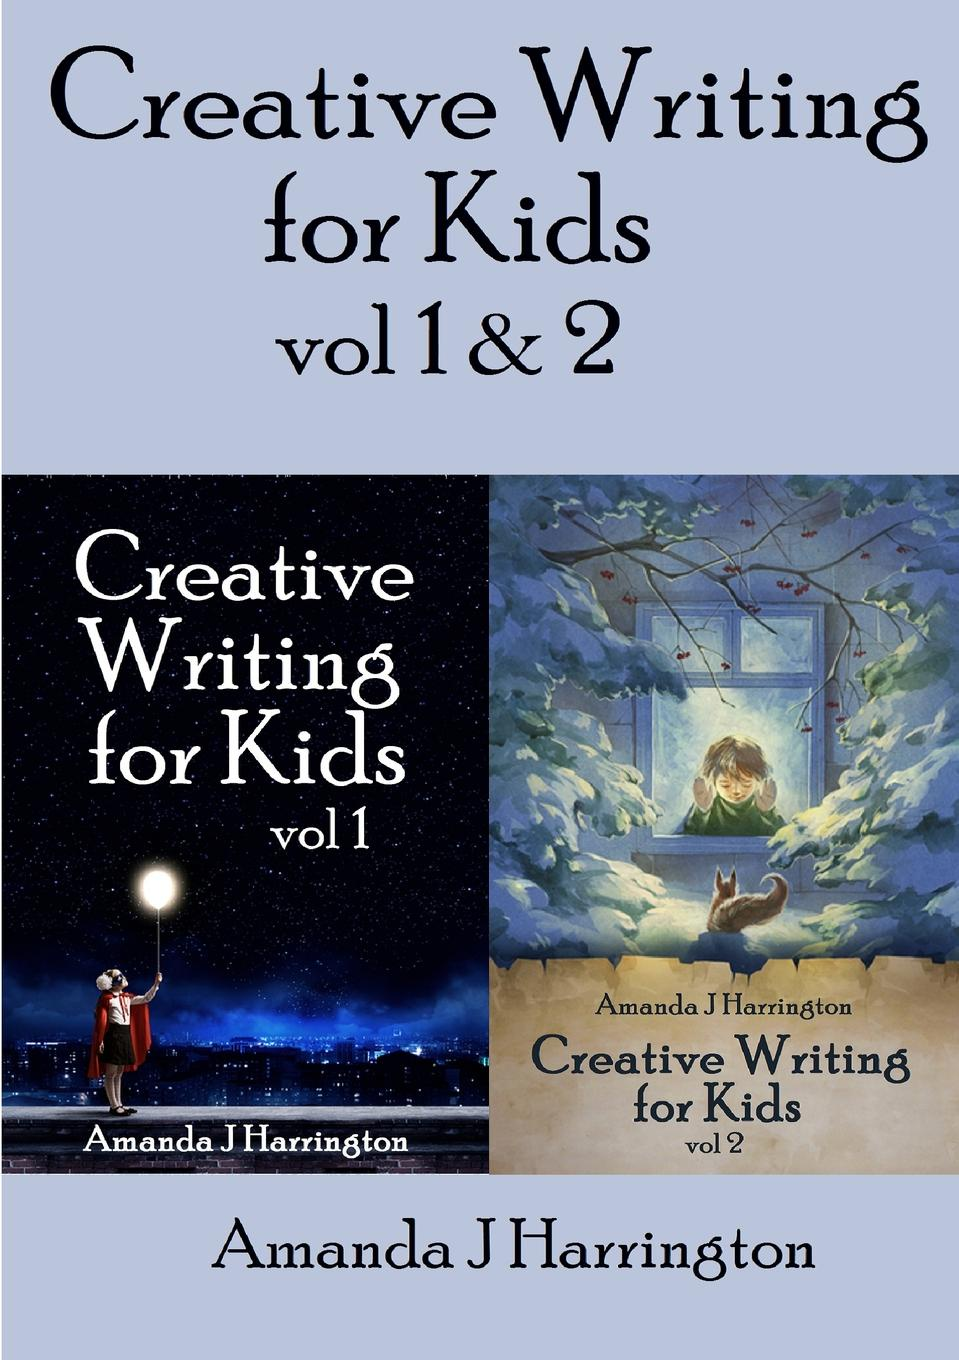 Amanda J Harrington Creative Writing for Kids vol 1 & 2 laptop motherboard for hp 686928 001 m6 1000 series la 8713p system mainboard fully tested and working well with cheap shipping